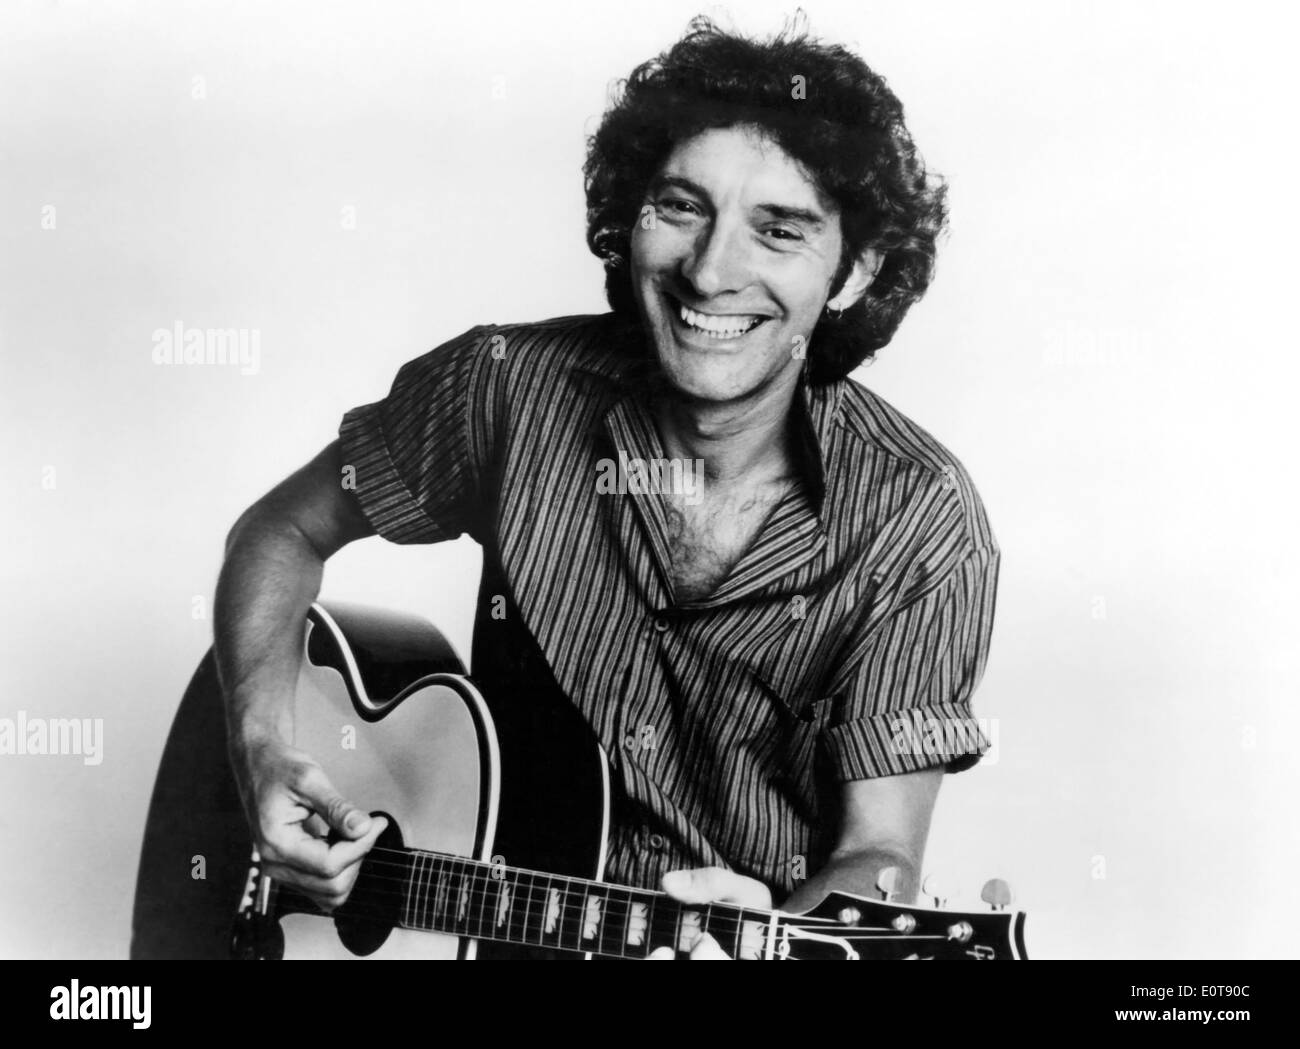 albert lee english guitarist portrait with guitar circa 1970 39 s stock photo 69375388 alamy. Black Bedroom Furniture Sets. Home Design Ideas